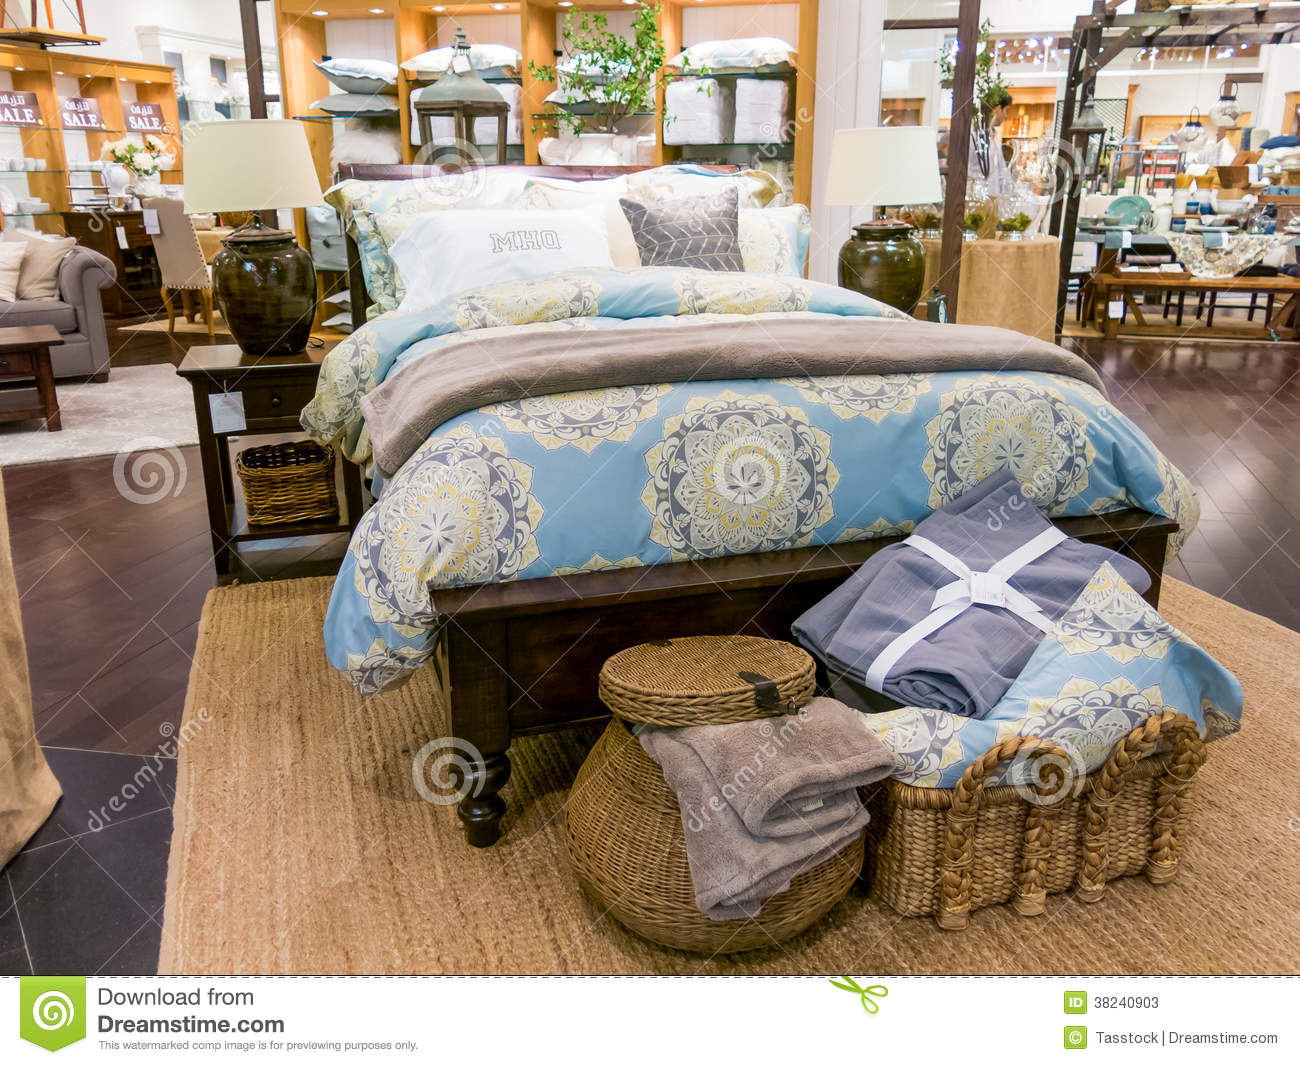 Home decor store in dubai mall editorial stock photo for Home furnishings and decor